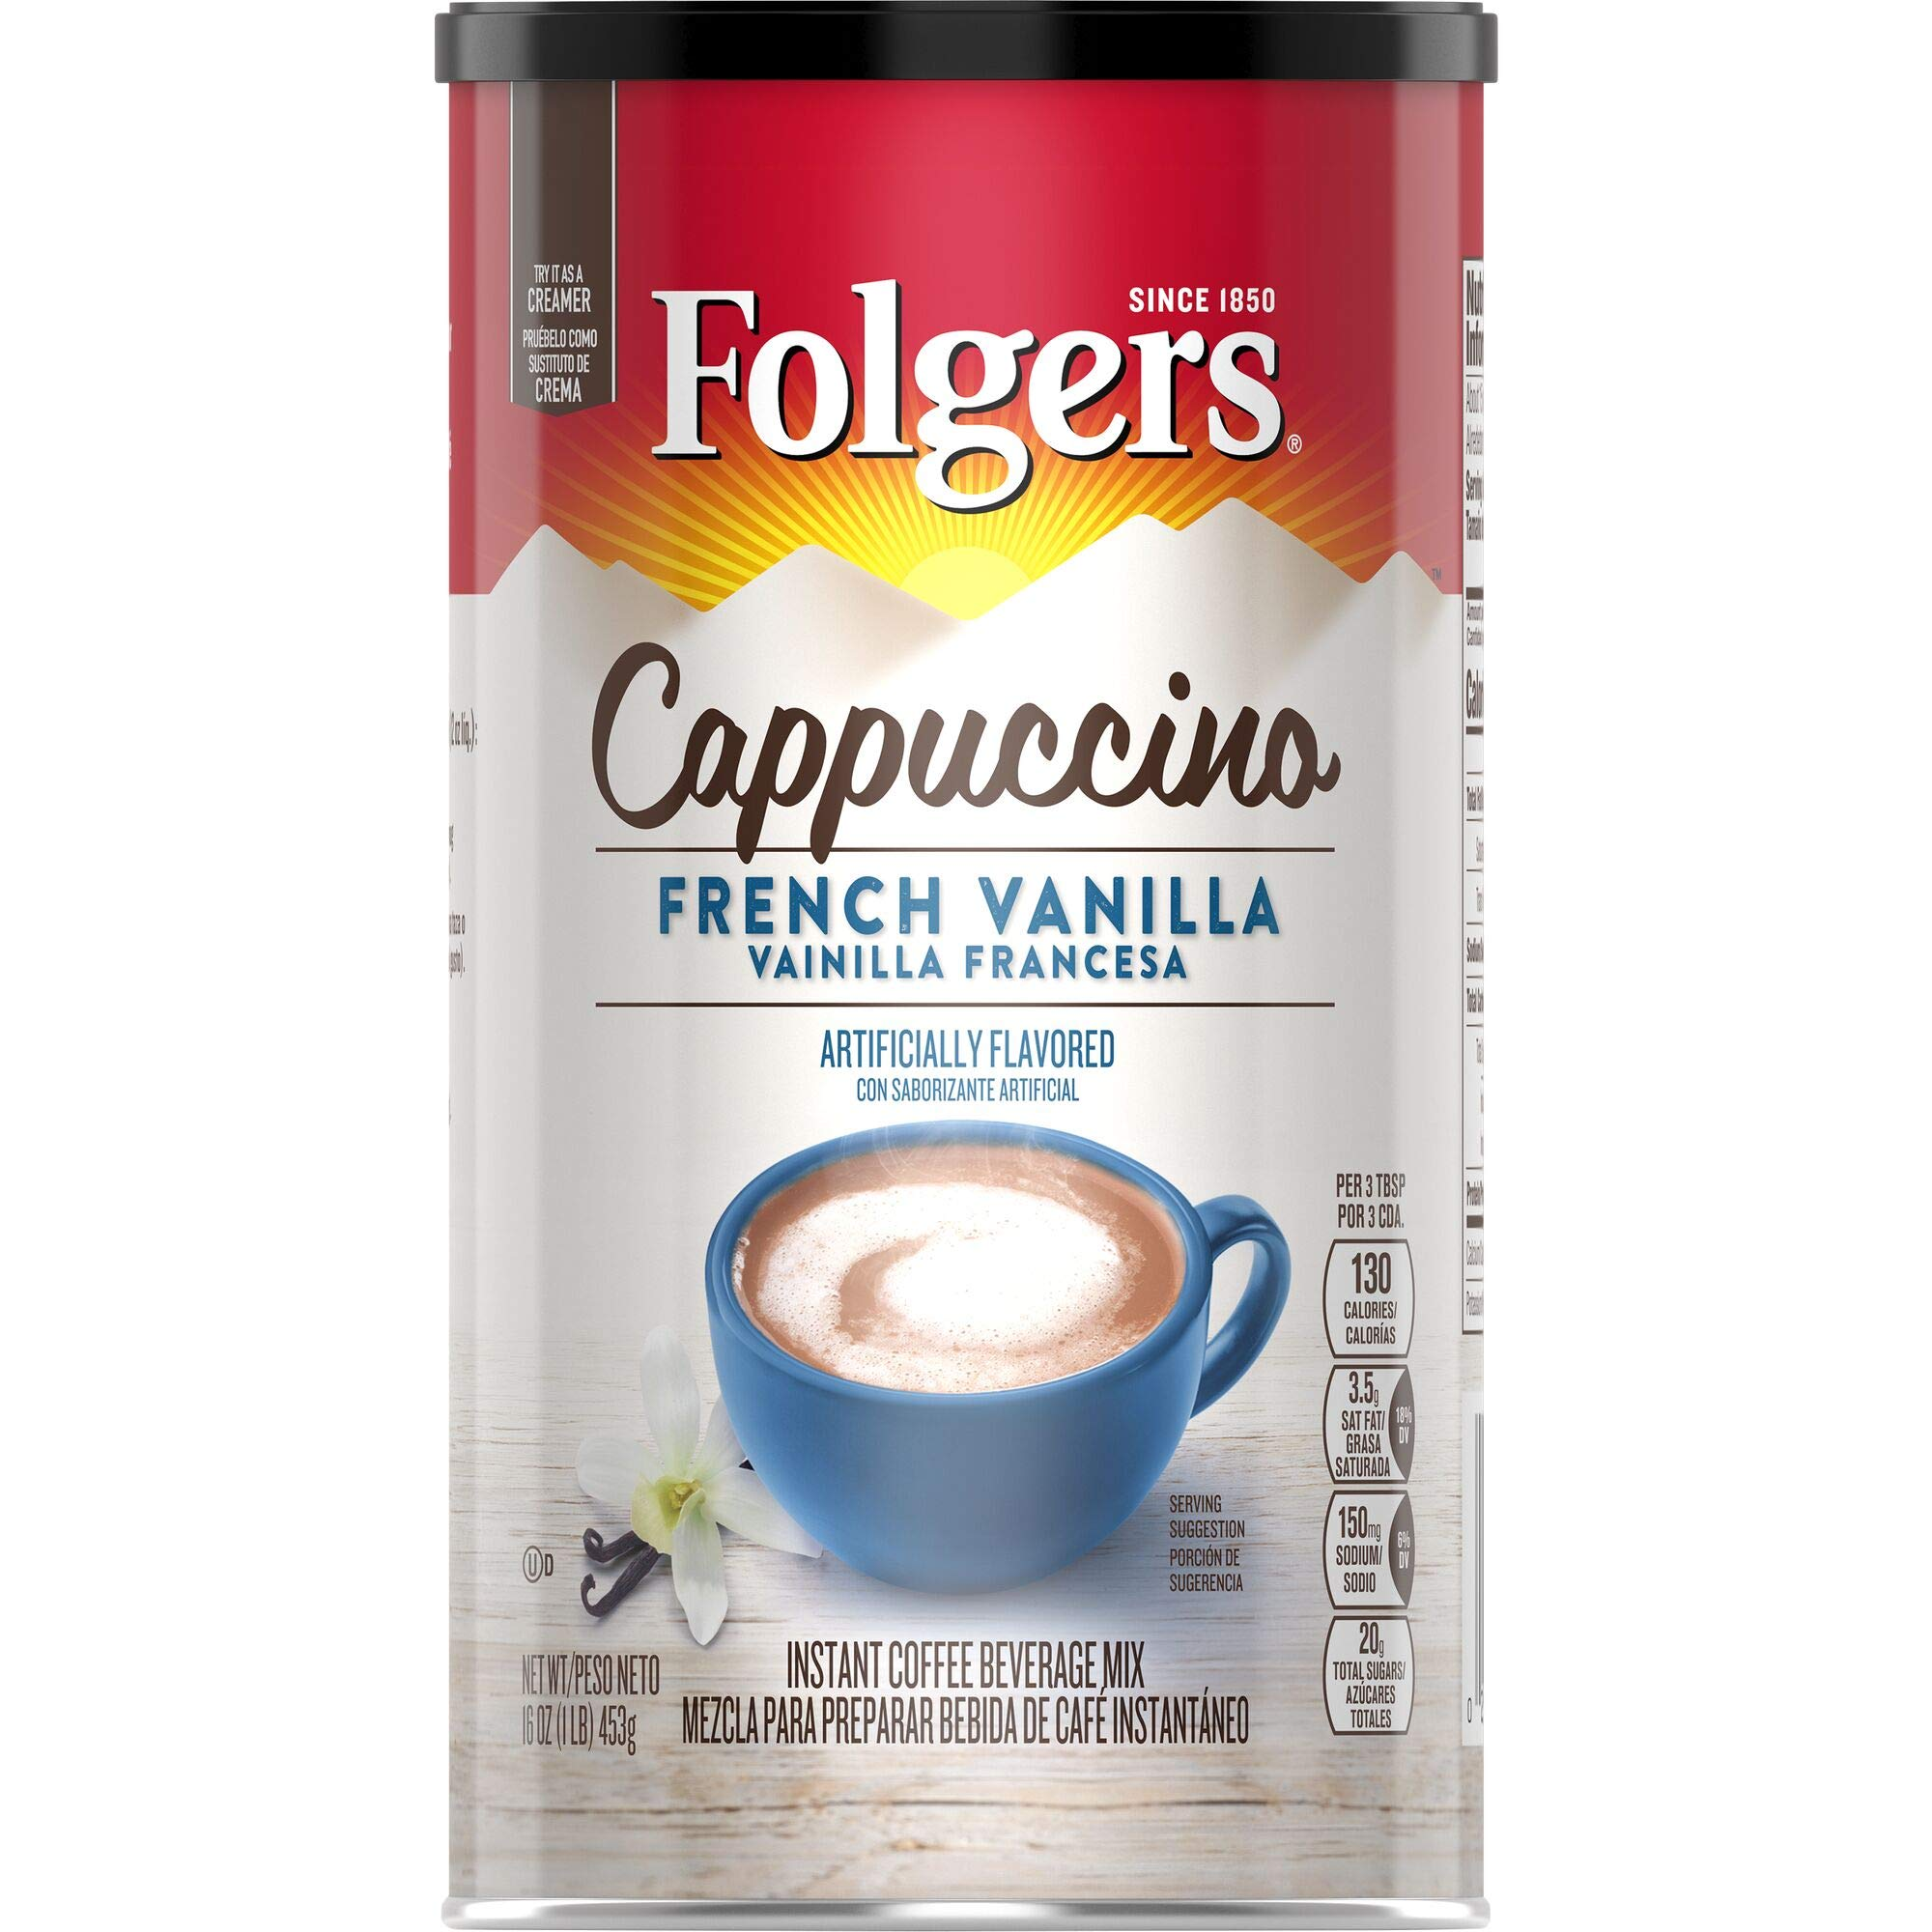 Folgers Cappuccino French Vanilla Beverage Mix, 16 Ounce, 6 Count, Packaging May Vary by Folgers